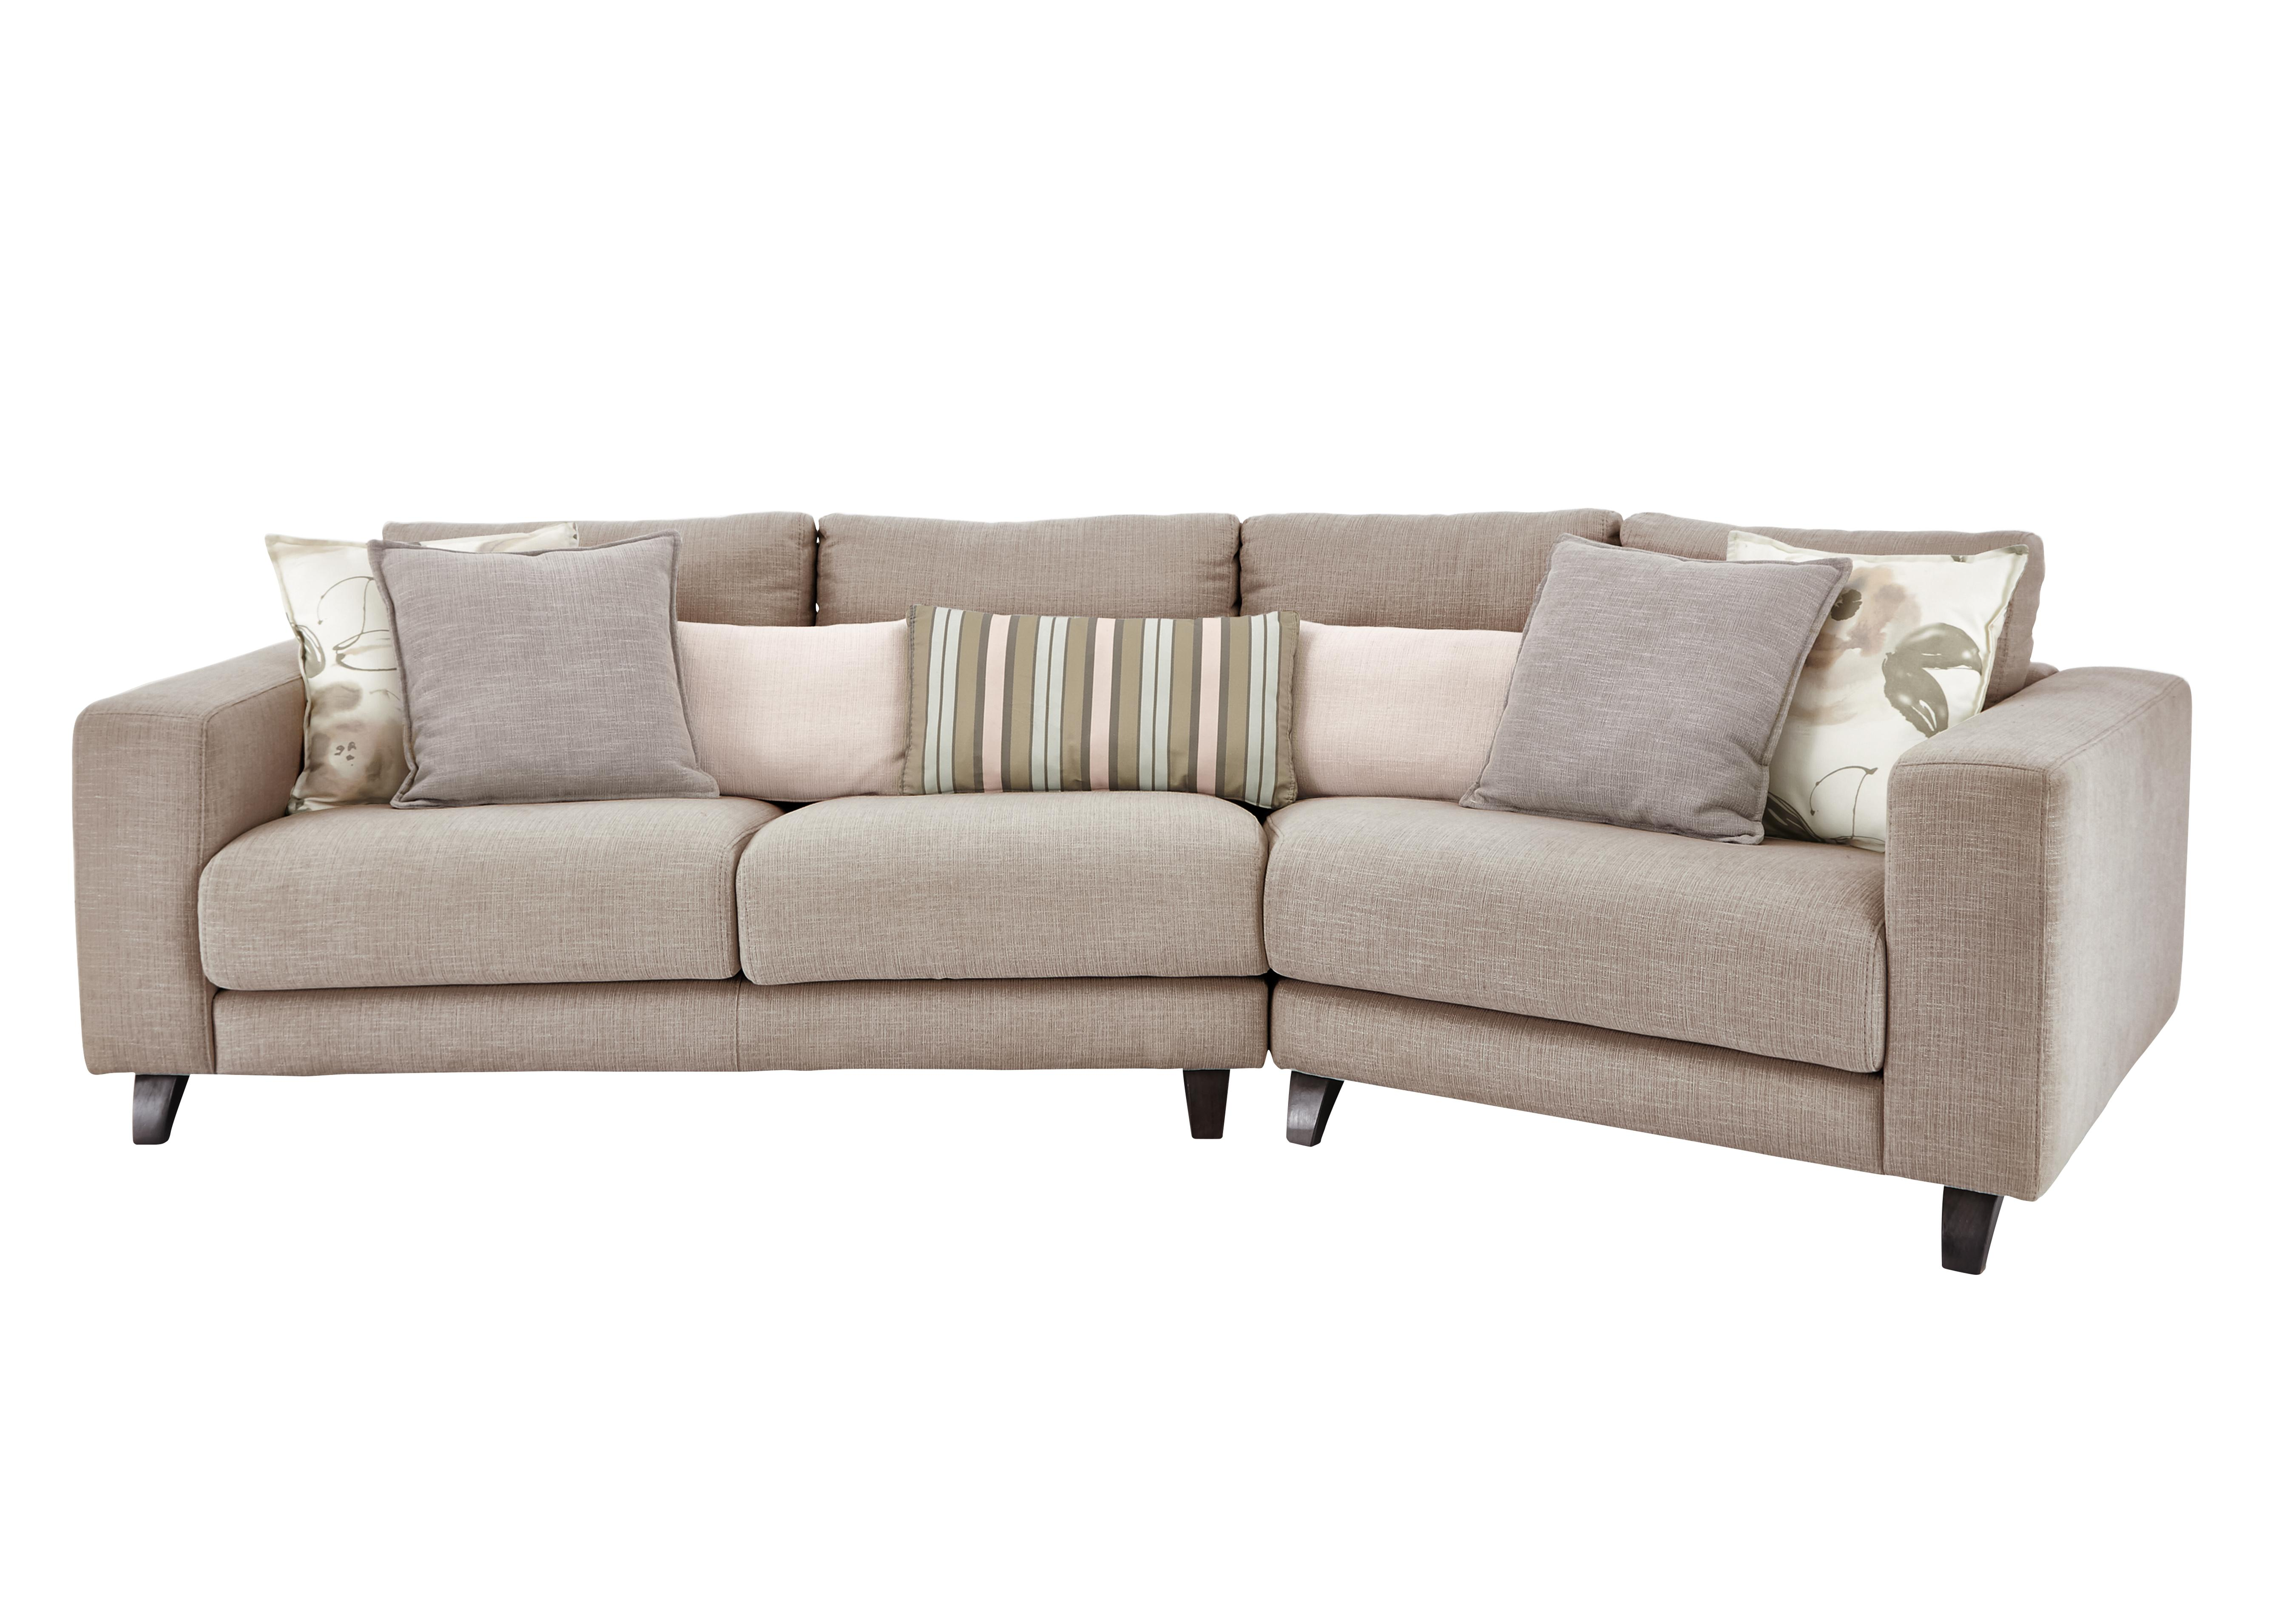 kick k angled fabric sofa furniture